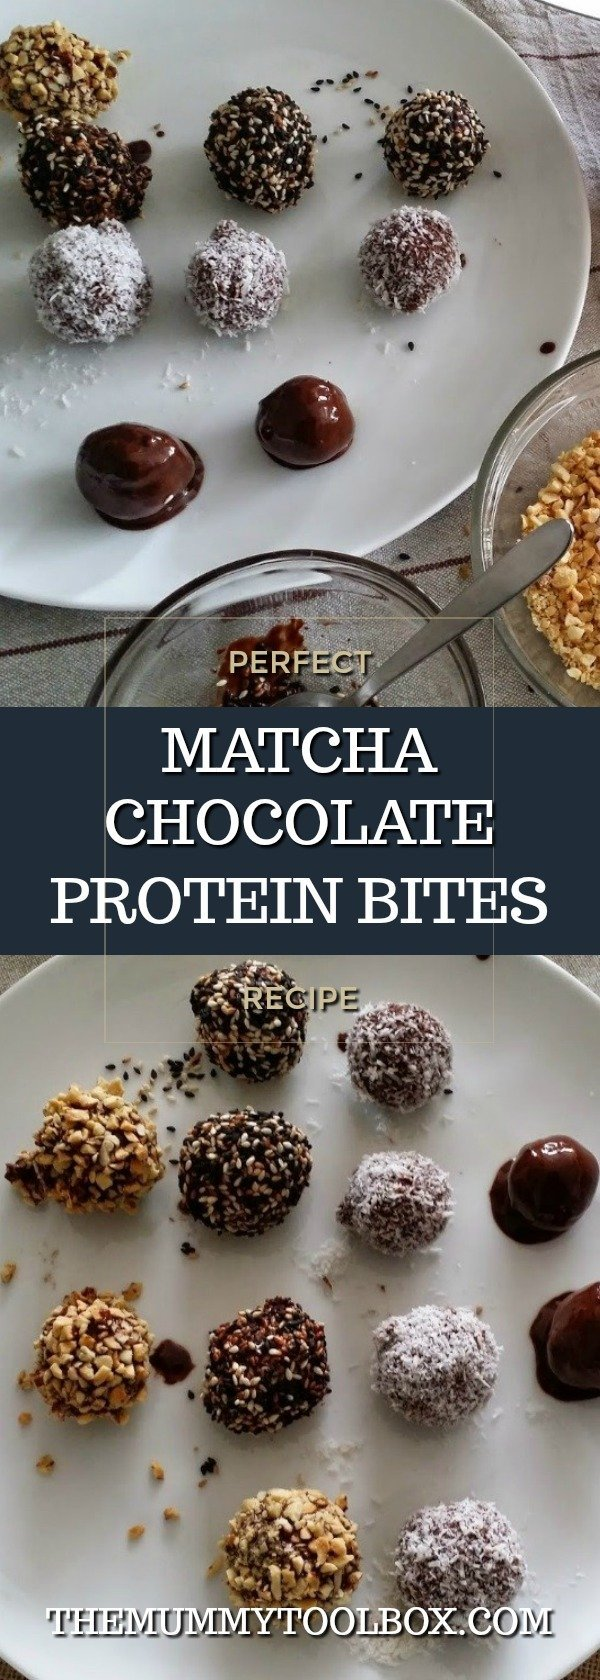 Matcha chocolate natural protein bites from scratch recipe guest post from Kitchen Takeovers. #recipes #delicious #foodies #protein